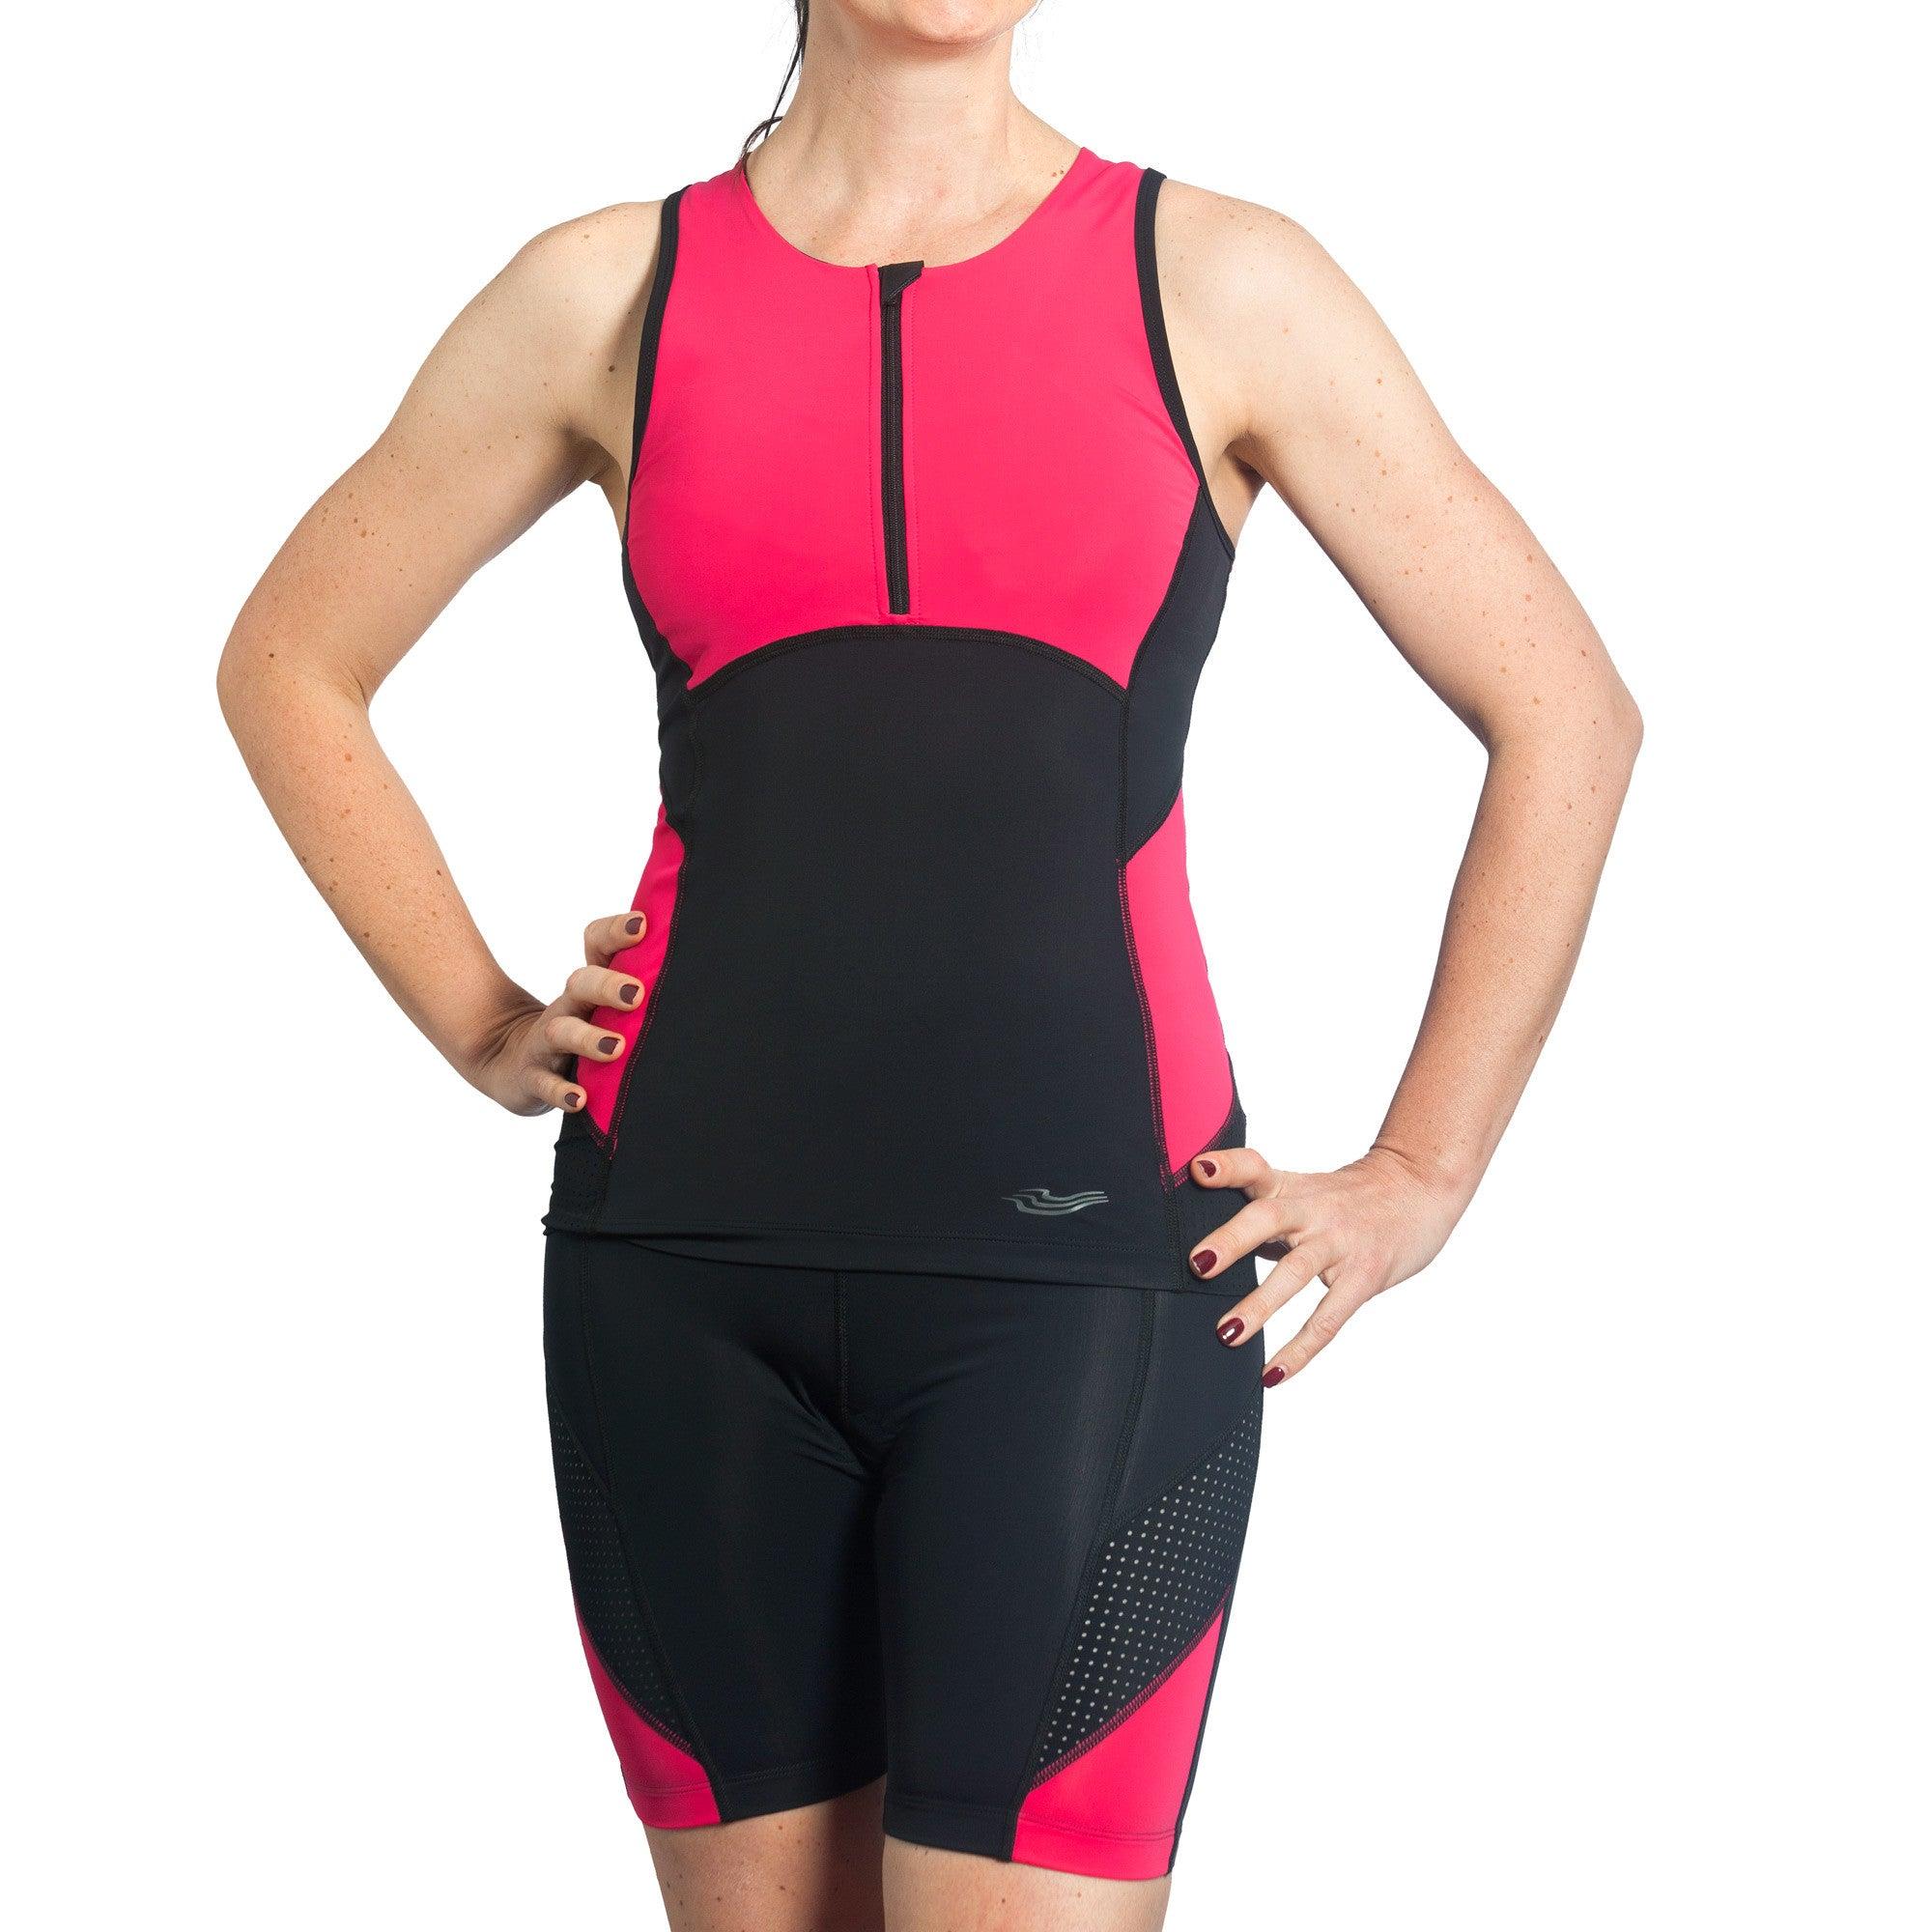 15% discount for this gorgeous Trigirl triathlon two-piece trisuit in pink